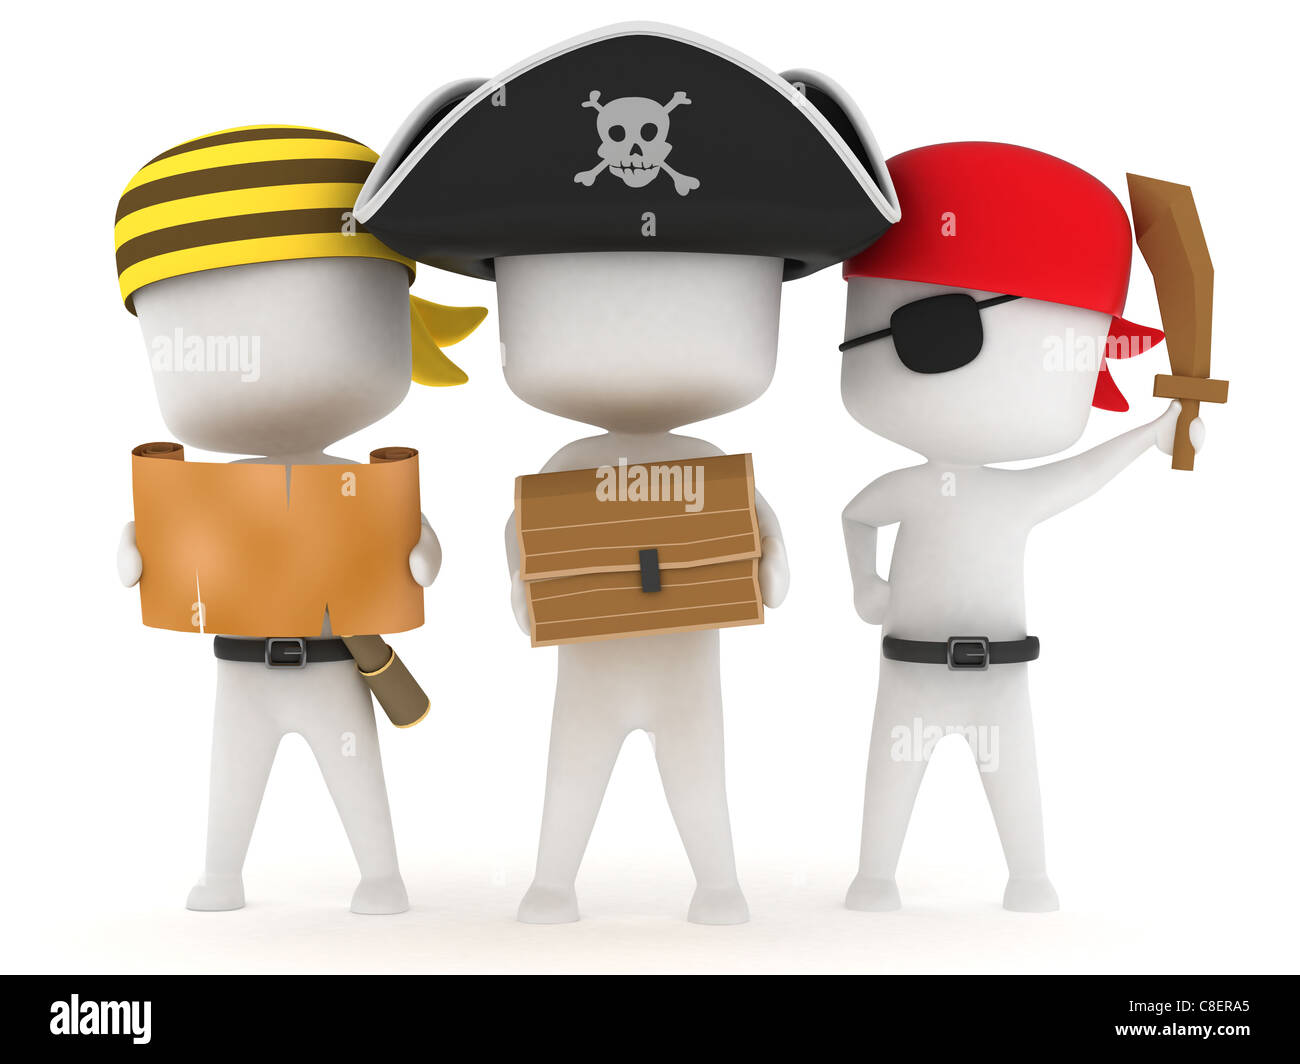 3D Illustration of Kids Dressed as Pirates - Stock Image